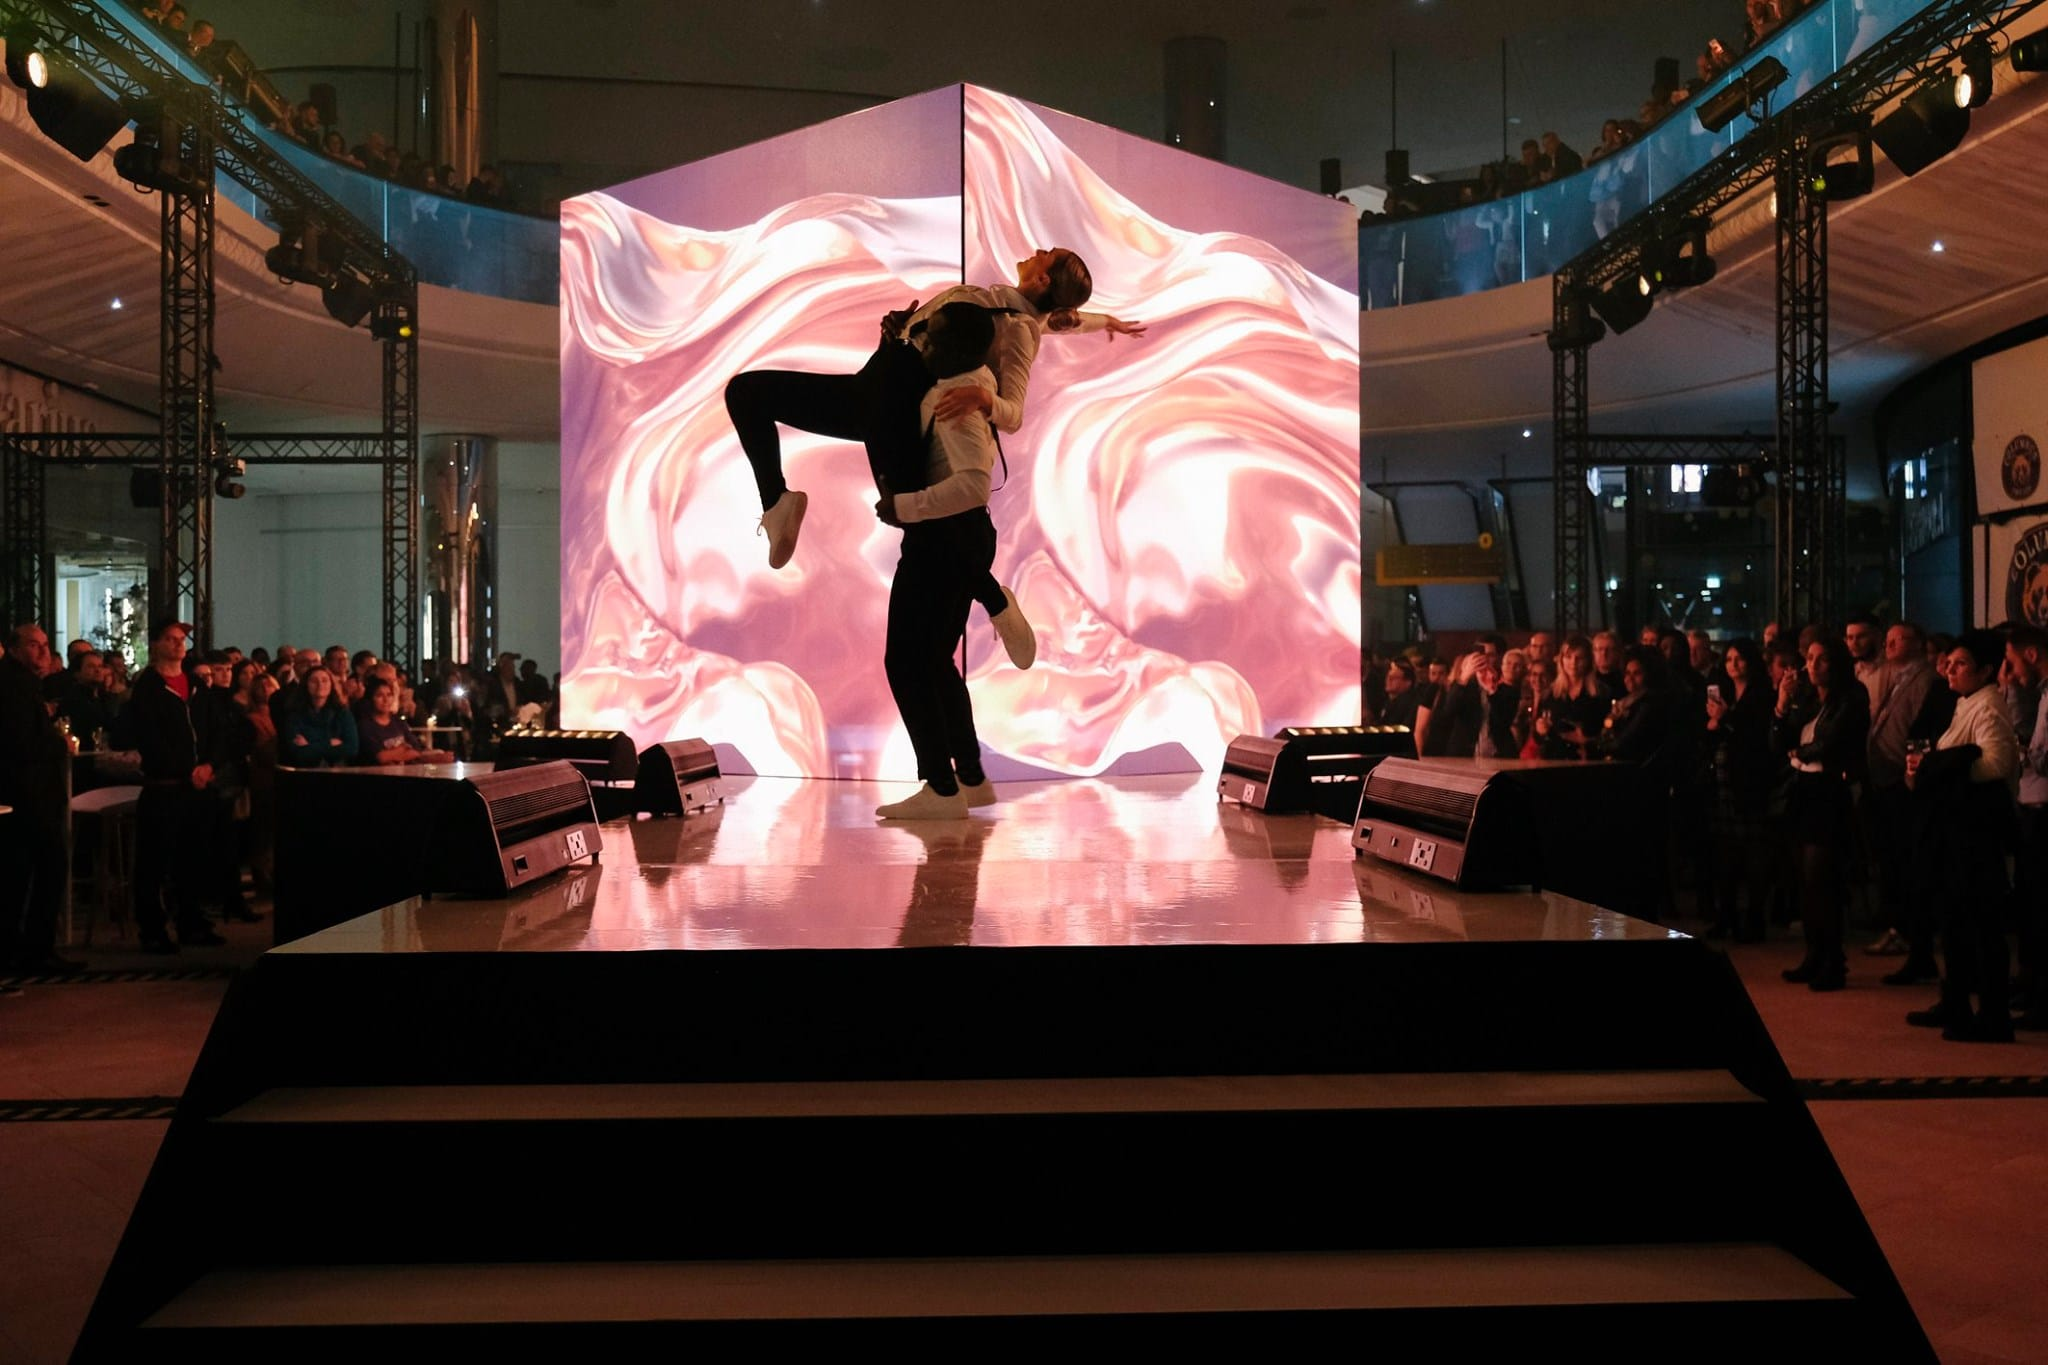 Shine a light event agency Luxembourg - Creates immersives experiences - Inauguration Cloche d'or